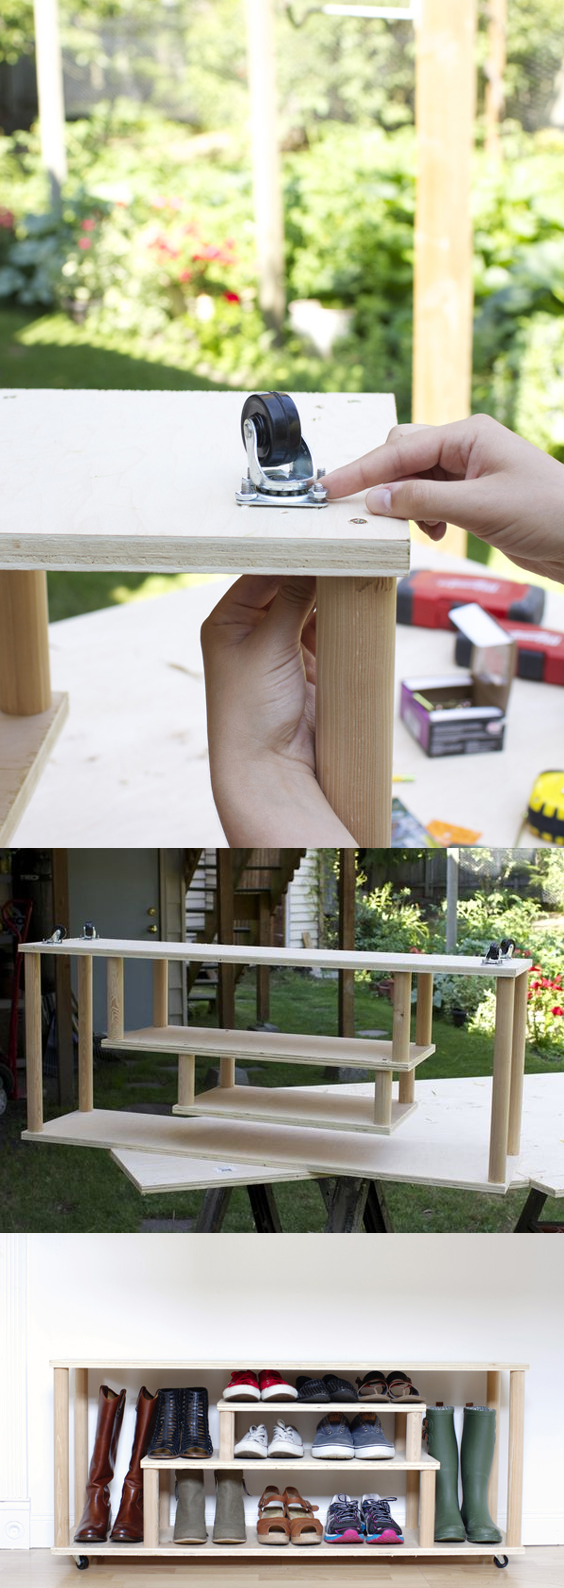 6 Movable Shoe Bench via simphome